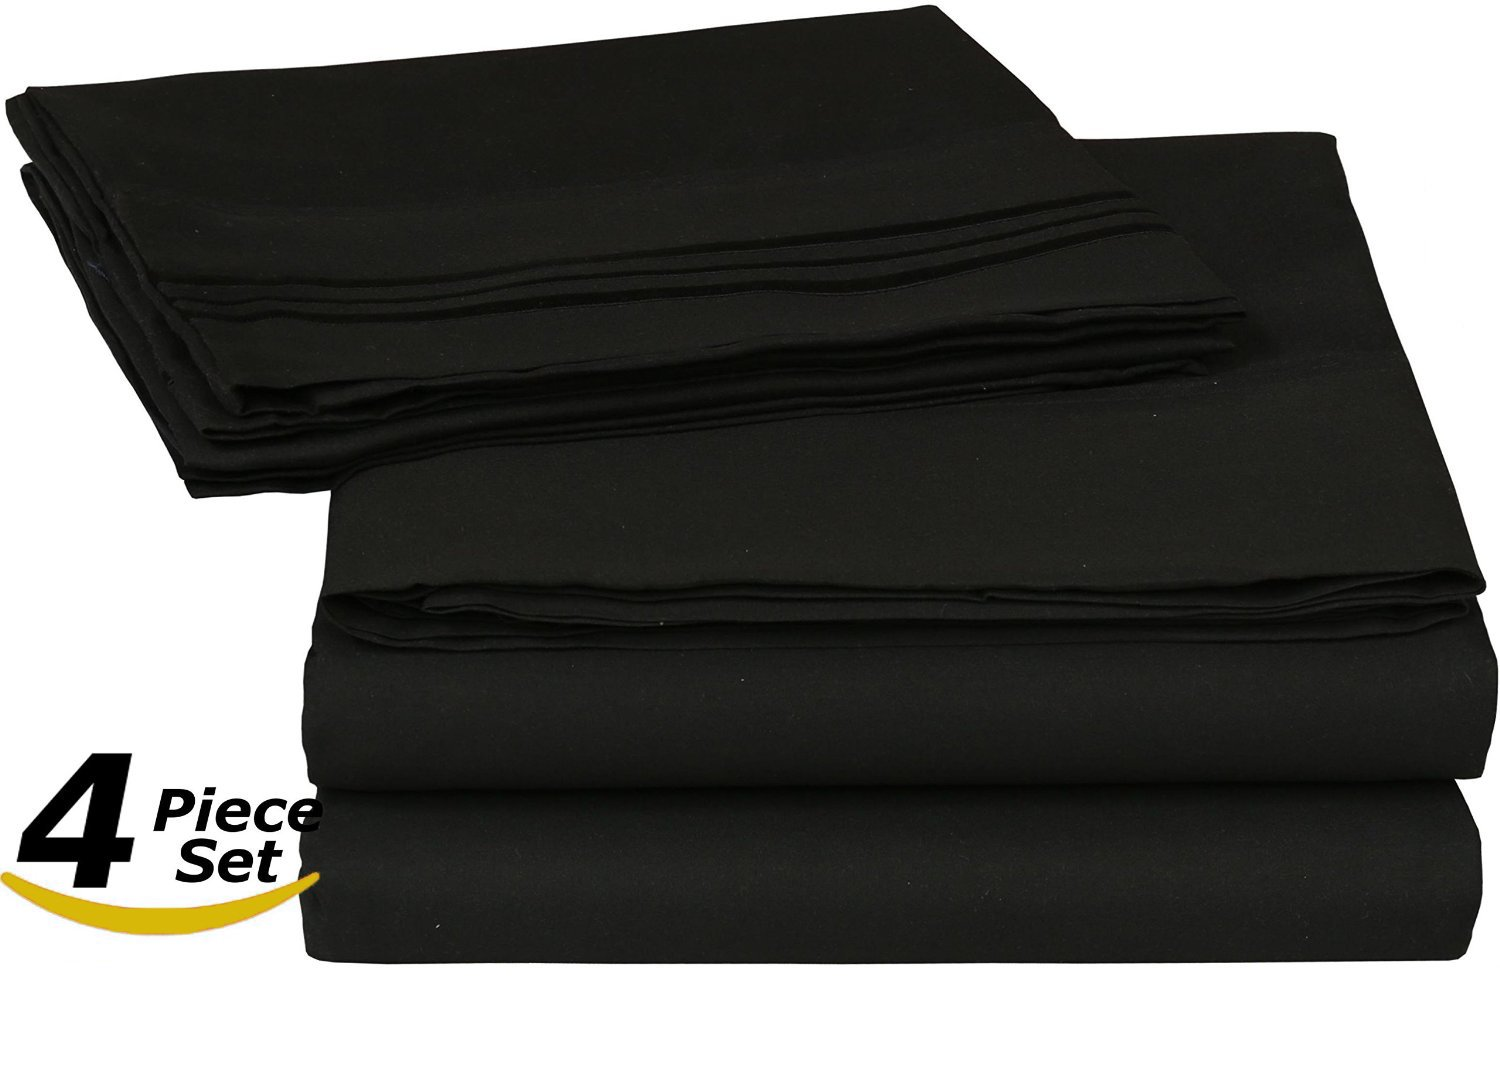 ROHI Bedding 4-piece Bed Sheet Set, Wrinkle, Fade & Stain Resistant, Hypoallergenic, Includes Fitted Sheet, Flat Sheet, and 2 Pillow Cases (Double, Black) INTELO